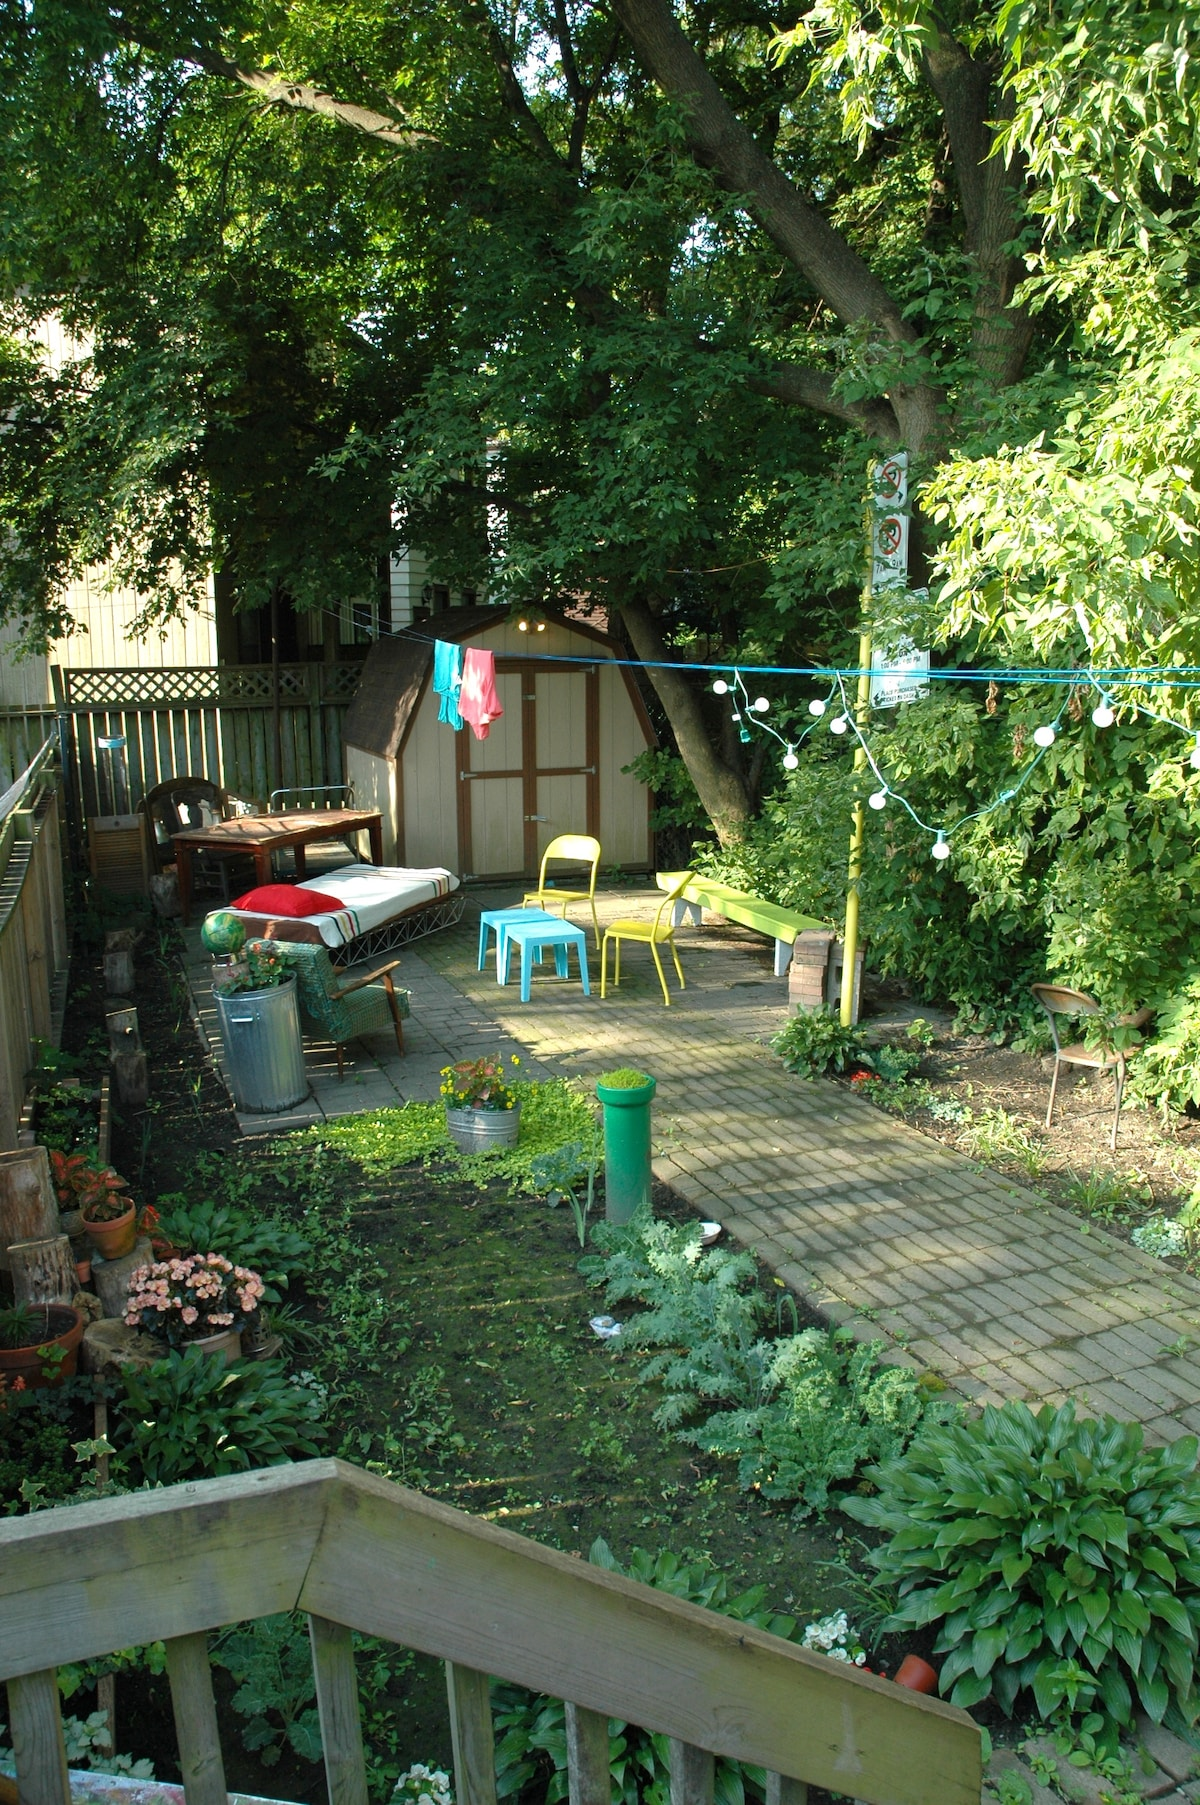 The BEAUTIFUL backyard!! i spend all summer back here! its so cool and amazing...heat wave in the city?? yah right. always cool and relaxing.